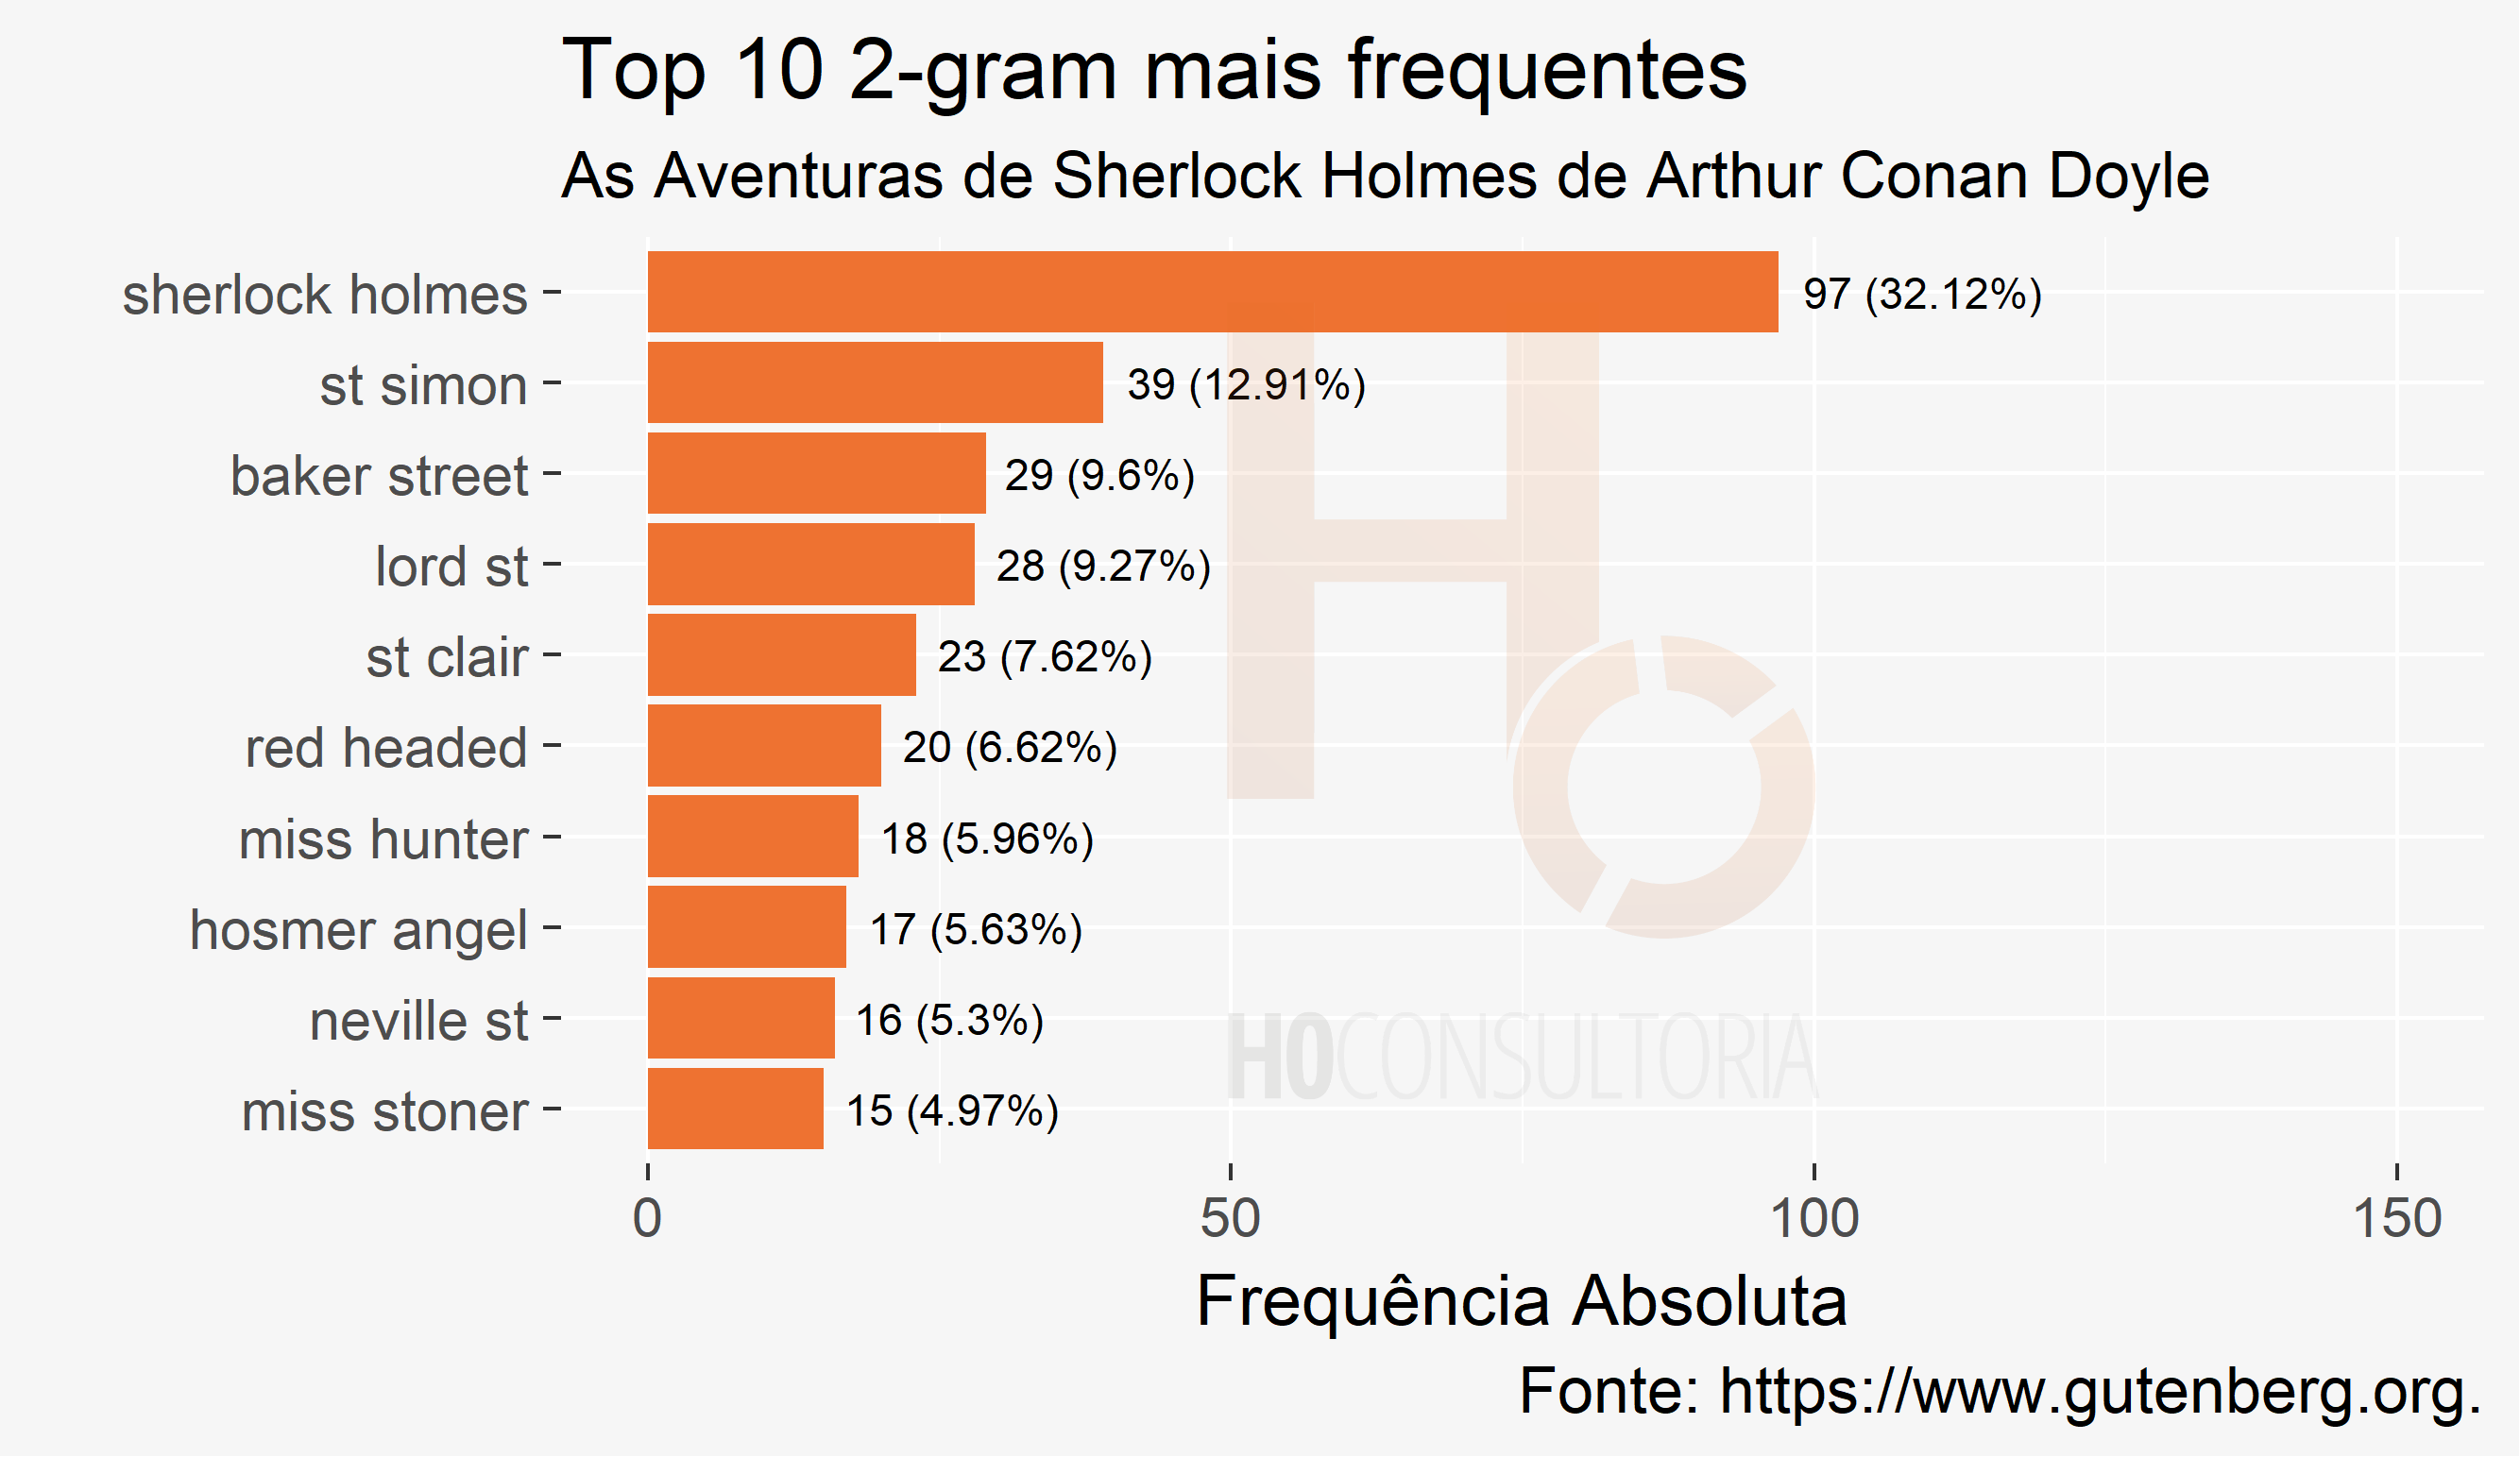 Top 10 2-gram mais frequentes do livro As Aventuras de Sherlock Holmes.